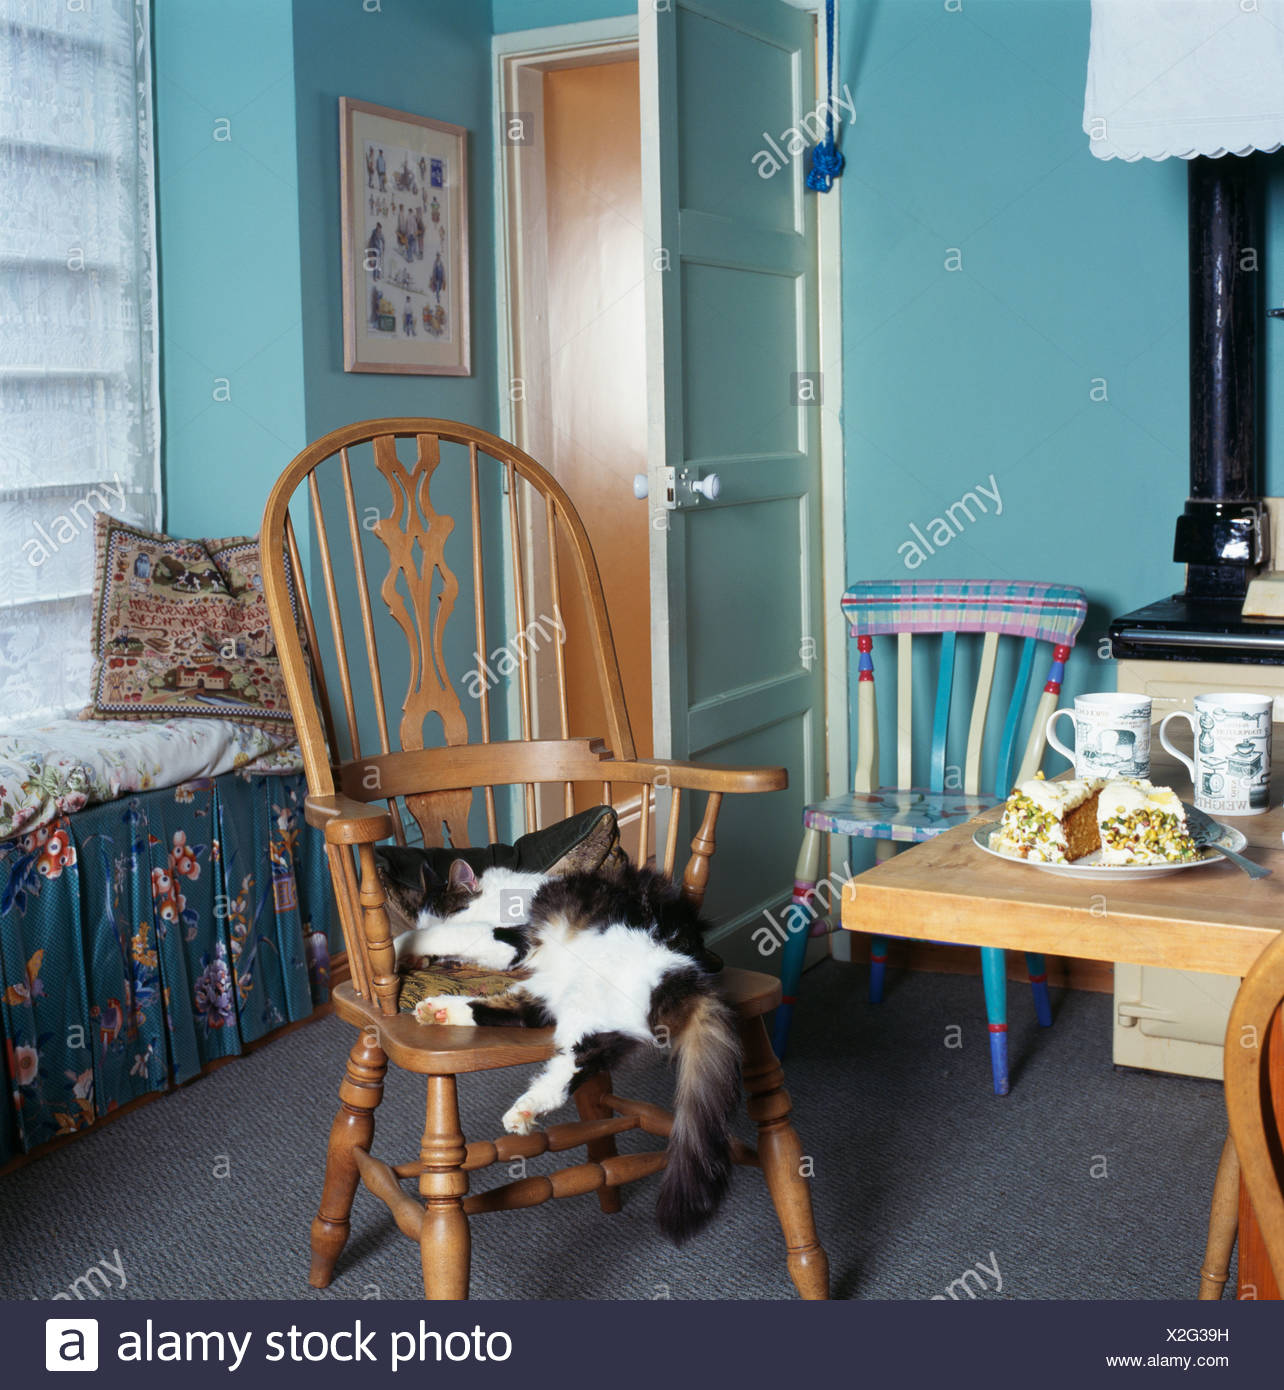 Black+white Cat Lying On Windsor Chair In Small Turquoise Kitchen Dining  Room